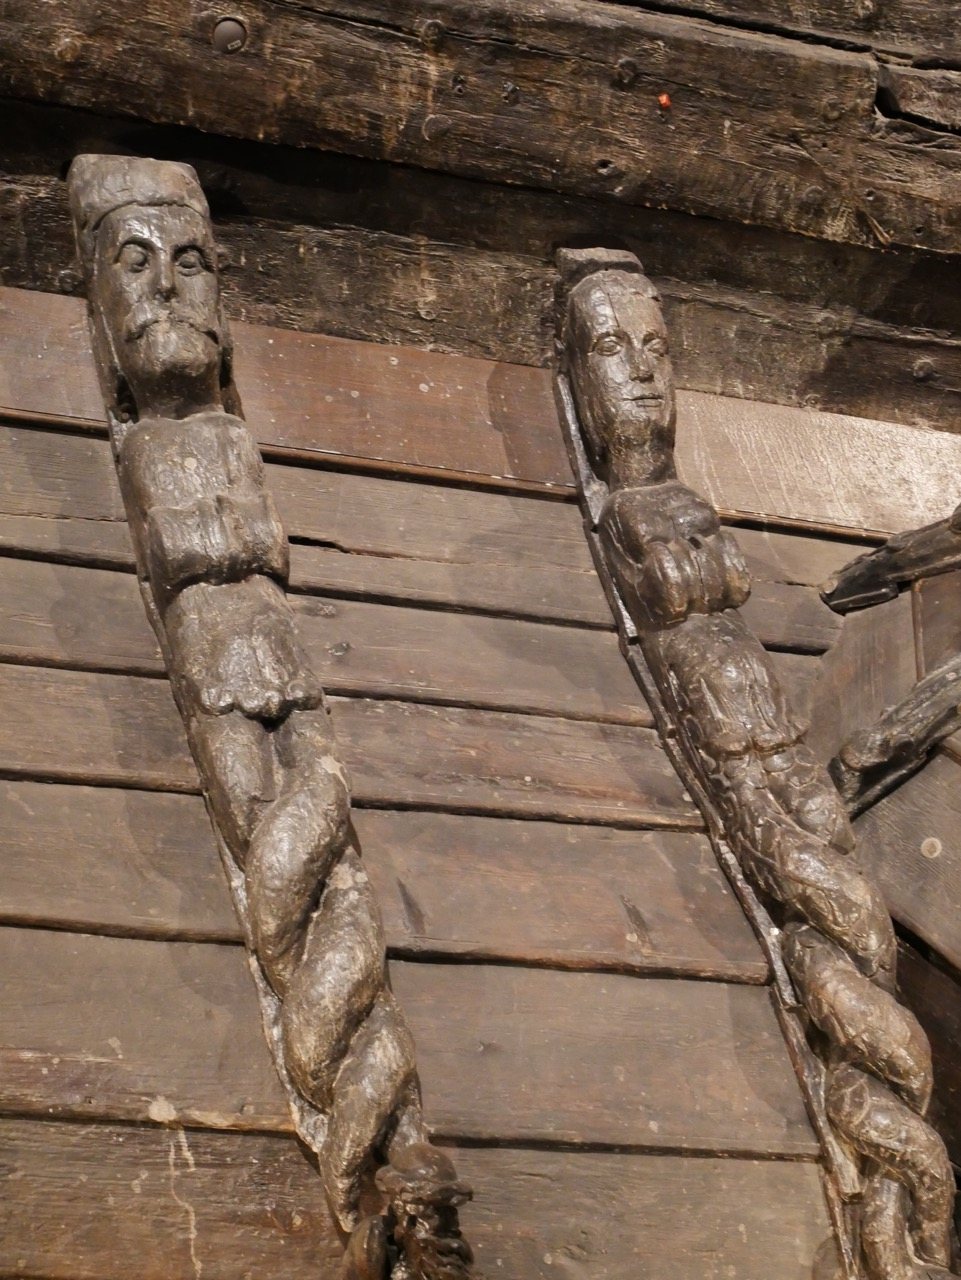 Close up of carved figures from the roof of the exterior room.